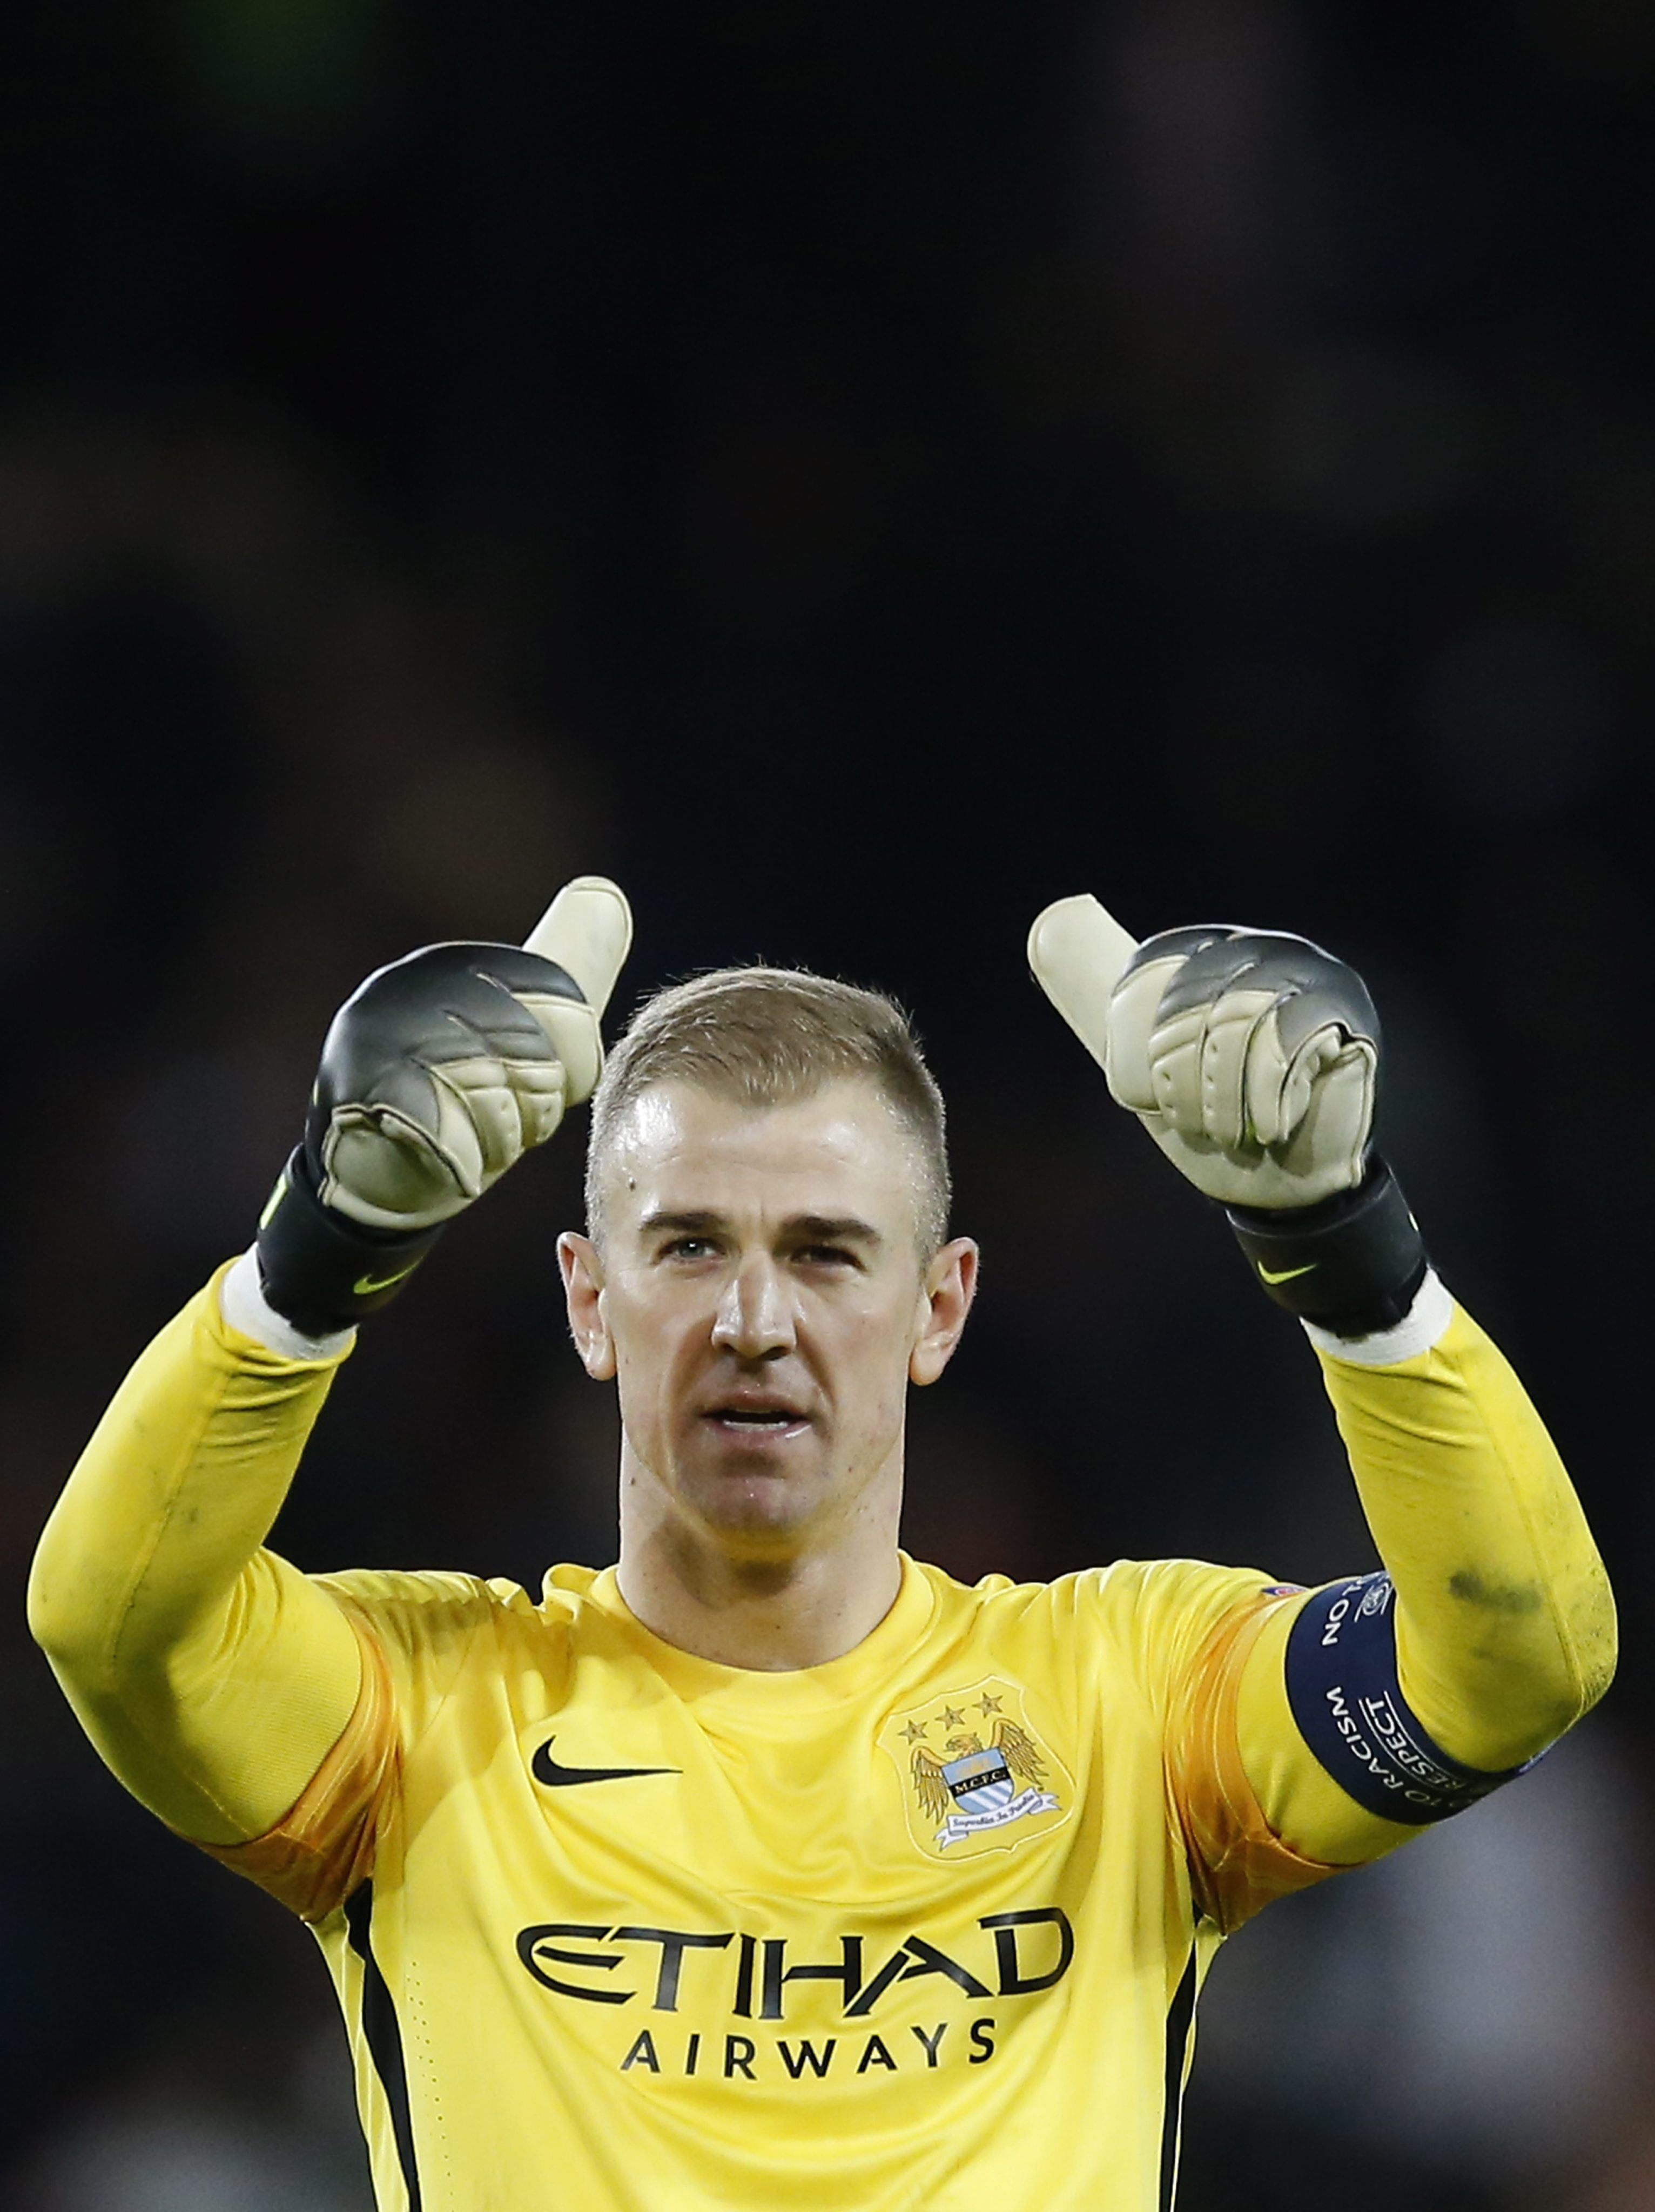 Manchester City goalkeeper Joe Hart reacts after the UEFA Champions League quarter final first leg soccer match between Paris Saint-Germain and Manchester City FC at the Parc des Princes Stadium in Paris, France, 06 April 2016. EPA/GUILLAUME HORCAJUELO